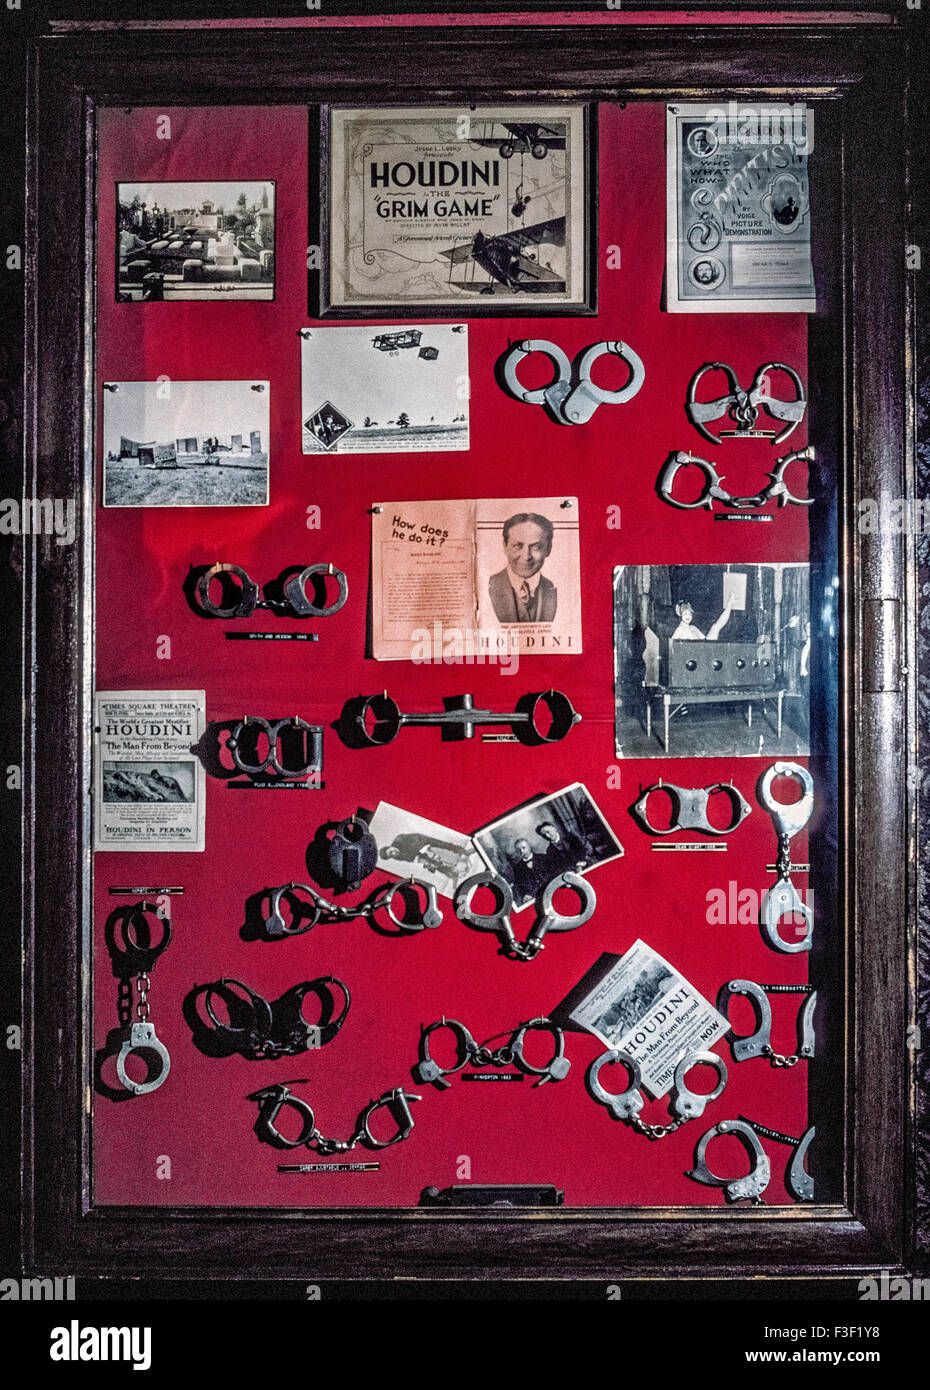 Handcuffs from which famed illusionist Harry Houdini escaped during his worldwide performances are displayed in Stock Photo